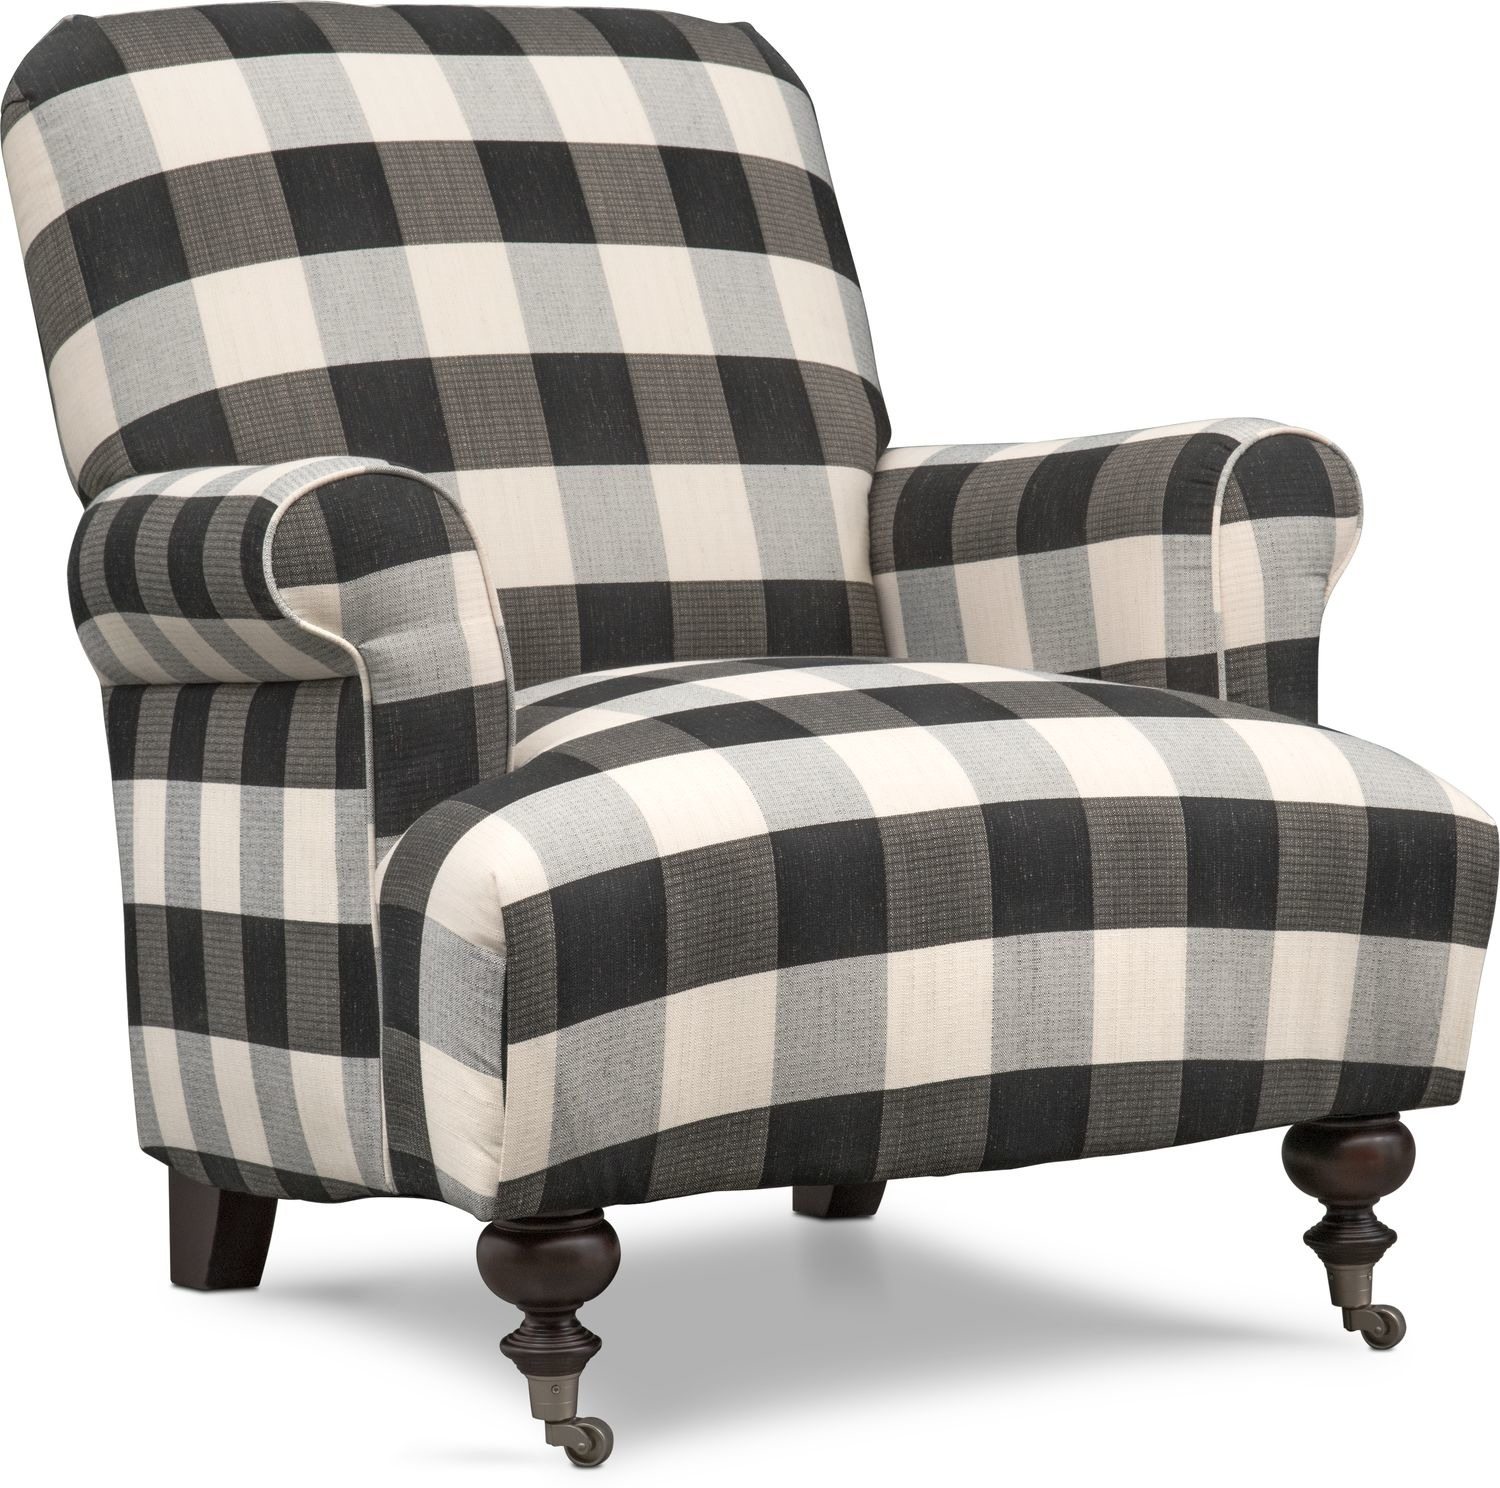 Tap to change Rhys Accent Chair - Black and White